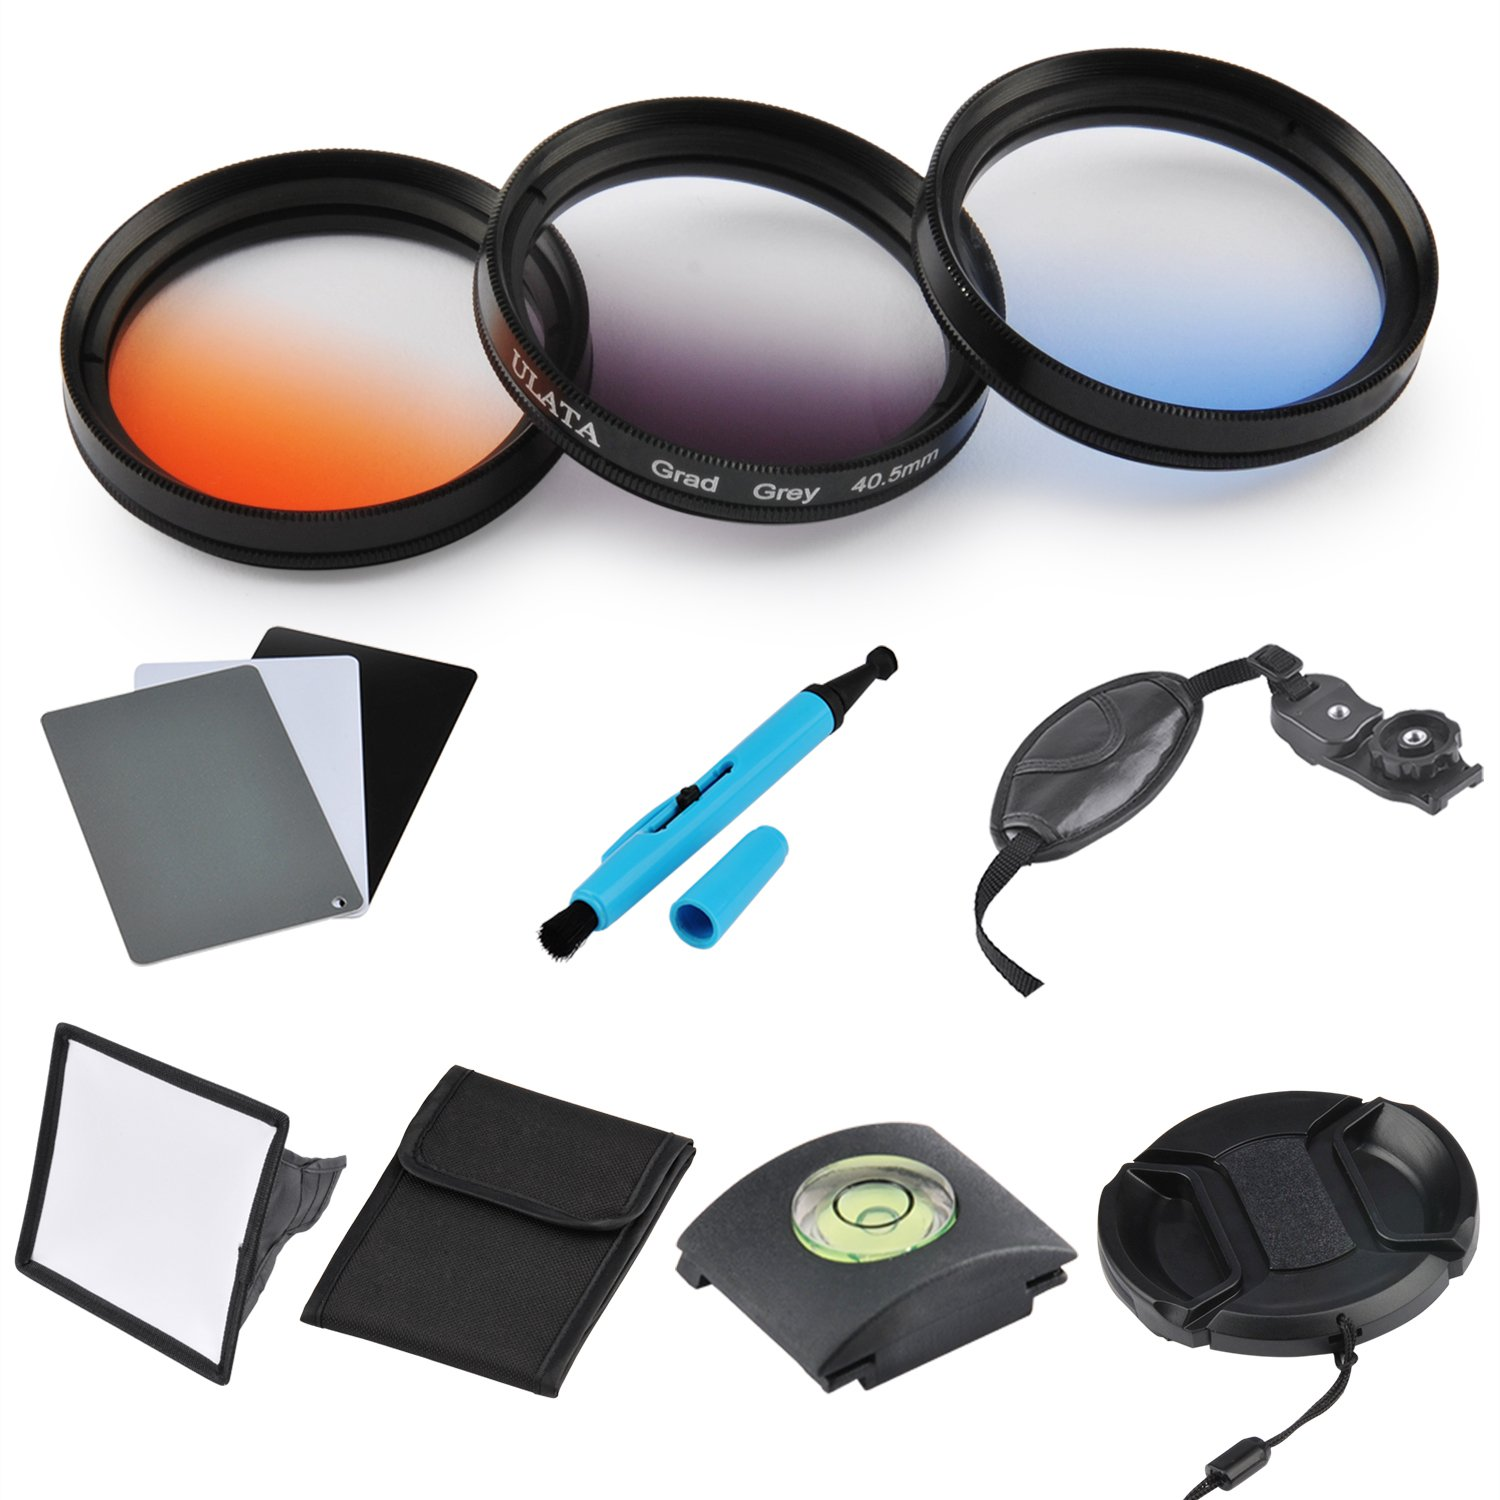 ULATA 40.5mm Orange Blue Gray Color Gradeated Filter Kit Circle Lens Filter For DSLR Camera For For Samsung NX100 NX200 NX210 NX300 Sony A6000 A5100 A5000 by ULATA